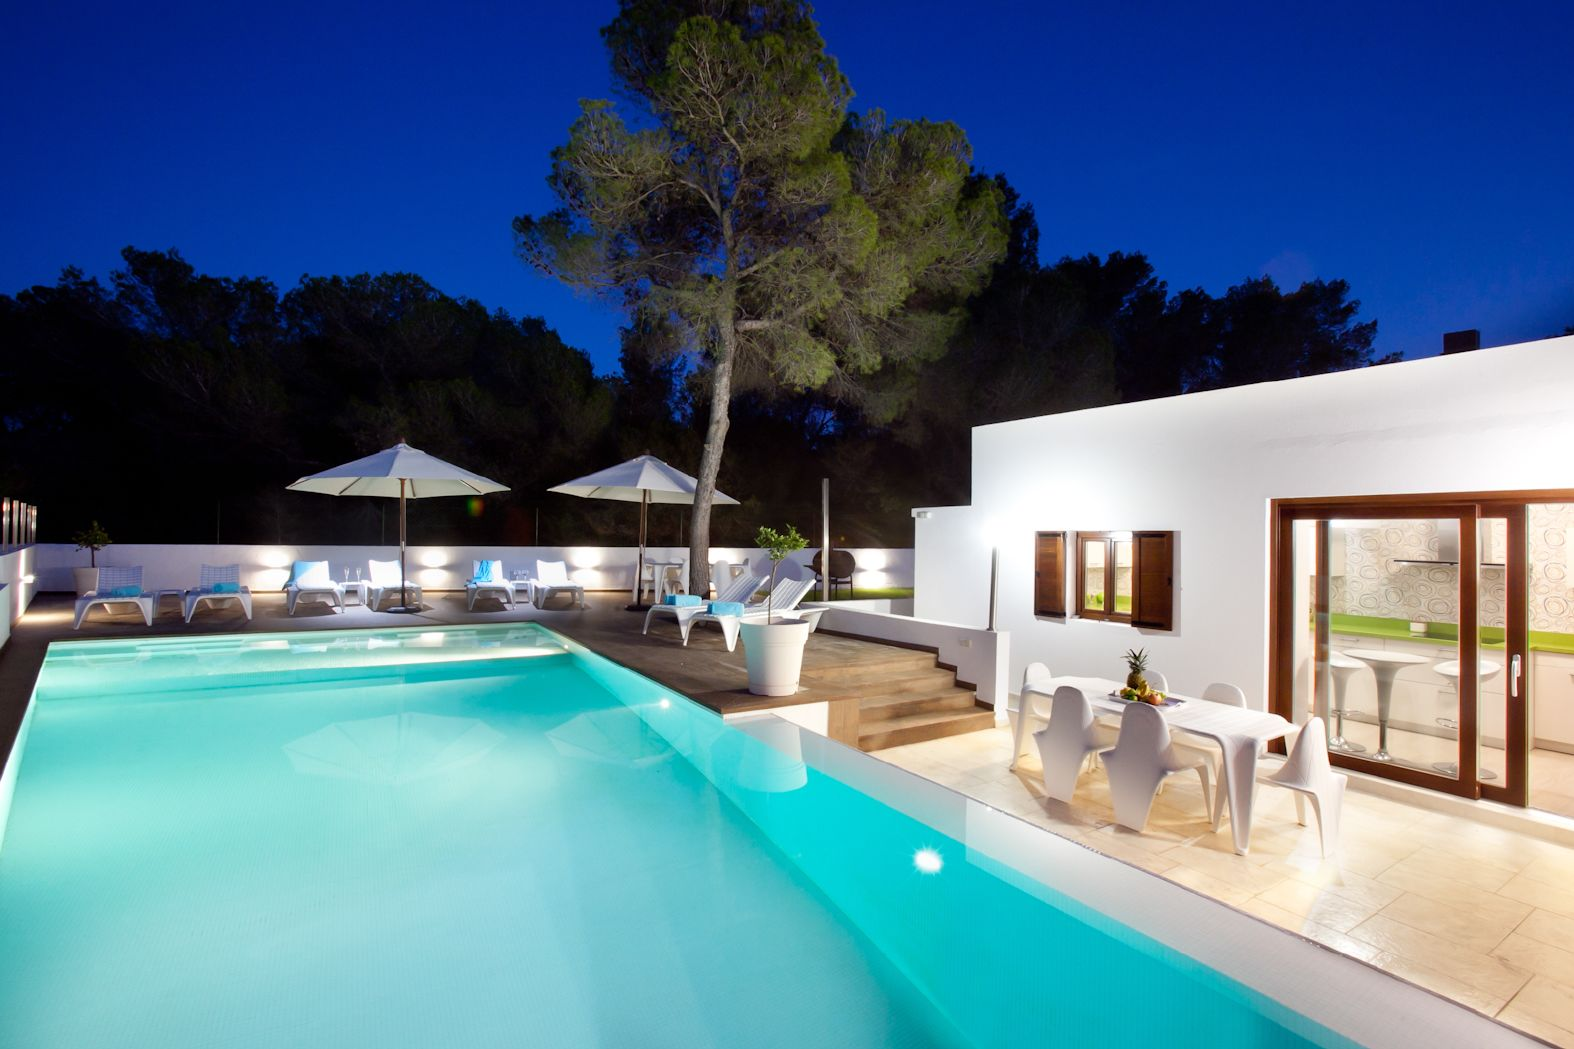 Beautiful 6 Bedroom House With Swimming Pool Garden And Terraces Reciently Reformed At 200 M From The Excellent Beach Cala Ba